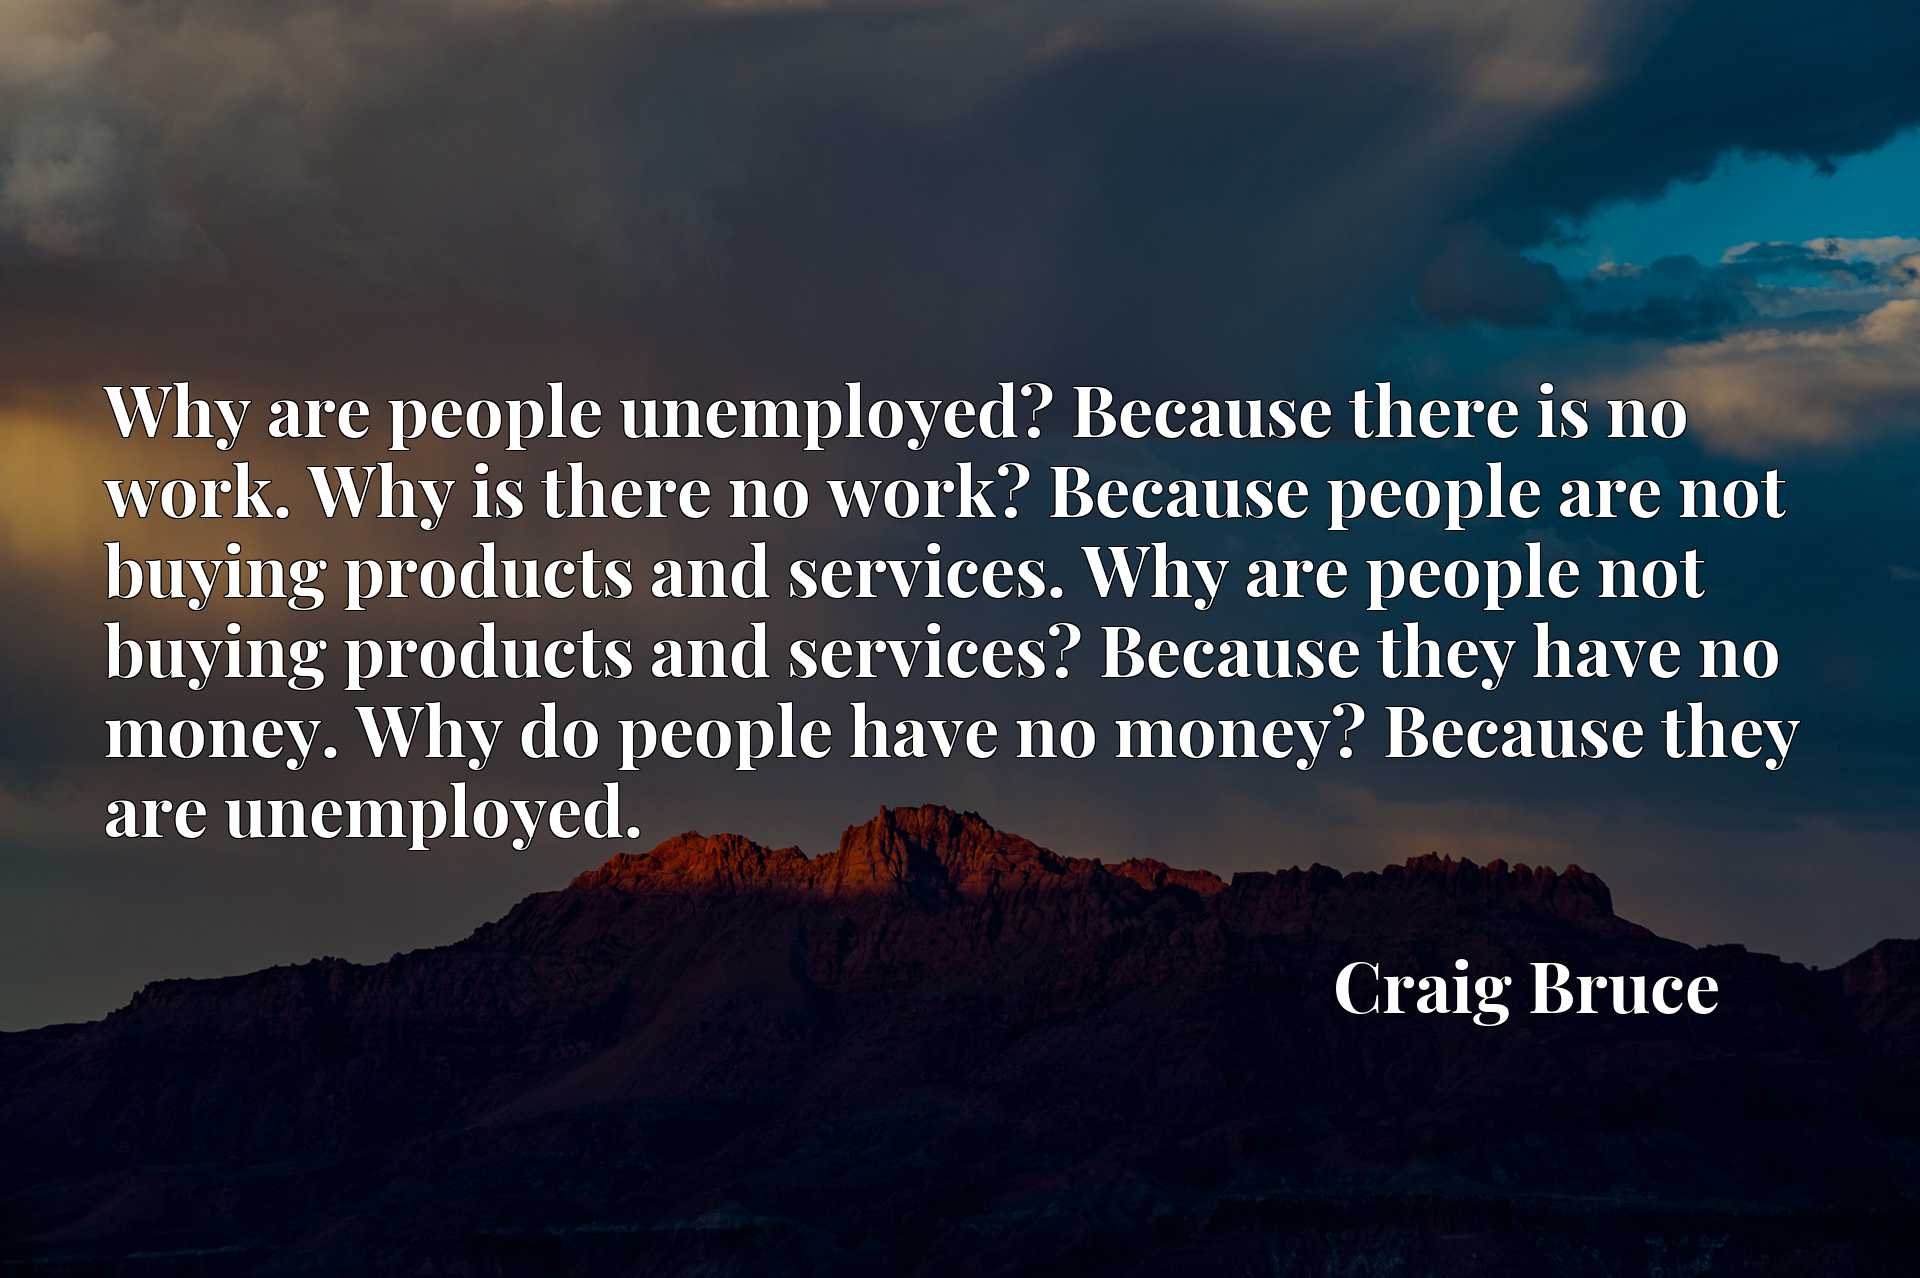 Why are people unemployed? Because there is no work. Why is there no work? Because people are not buying products and services. Why are people not buying products and services? Because they have no money. Why do people have no money? Because they are unemployed.